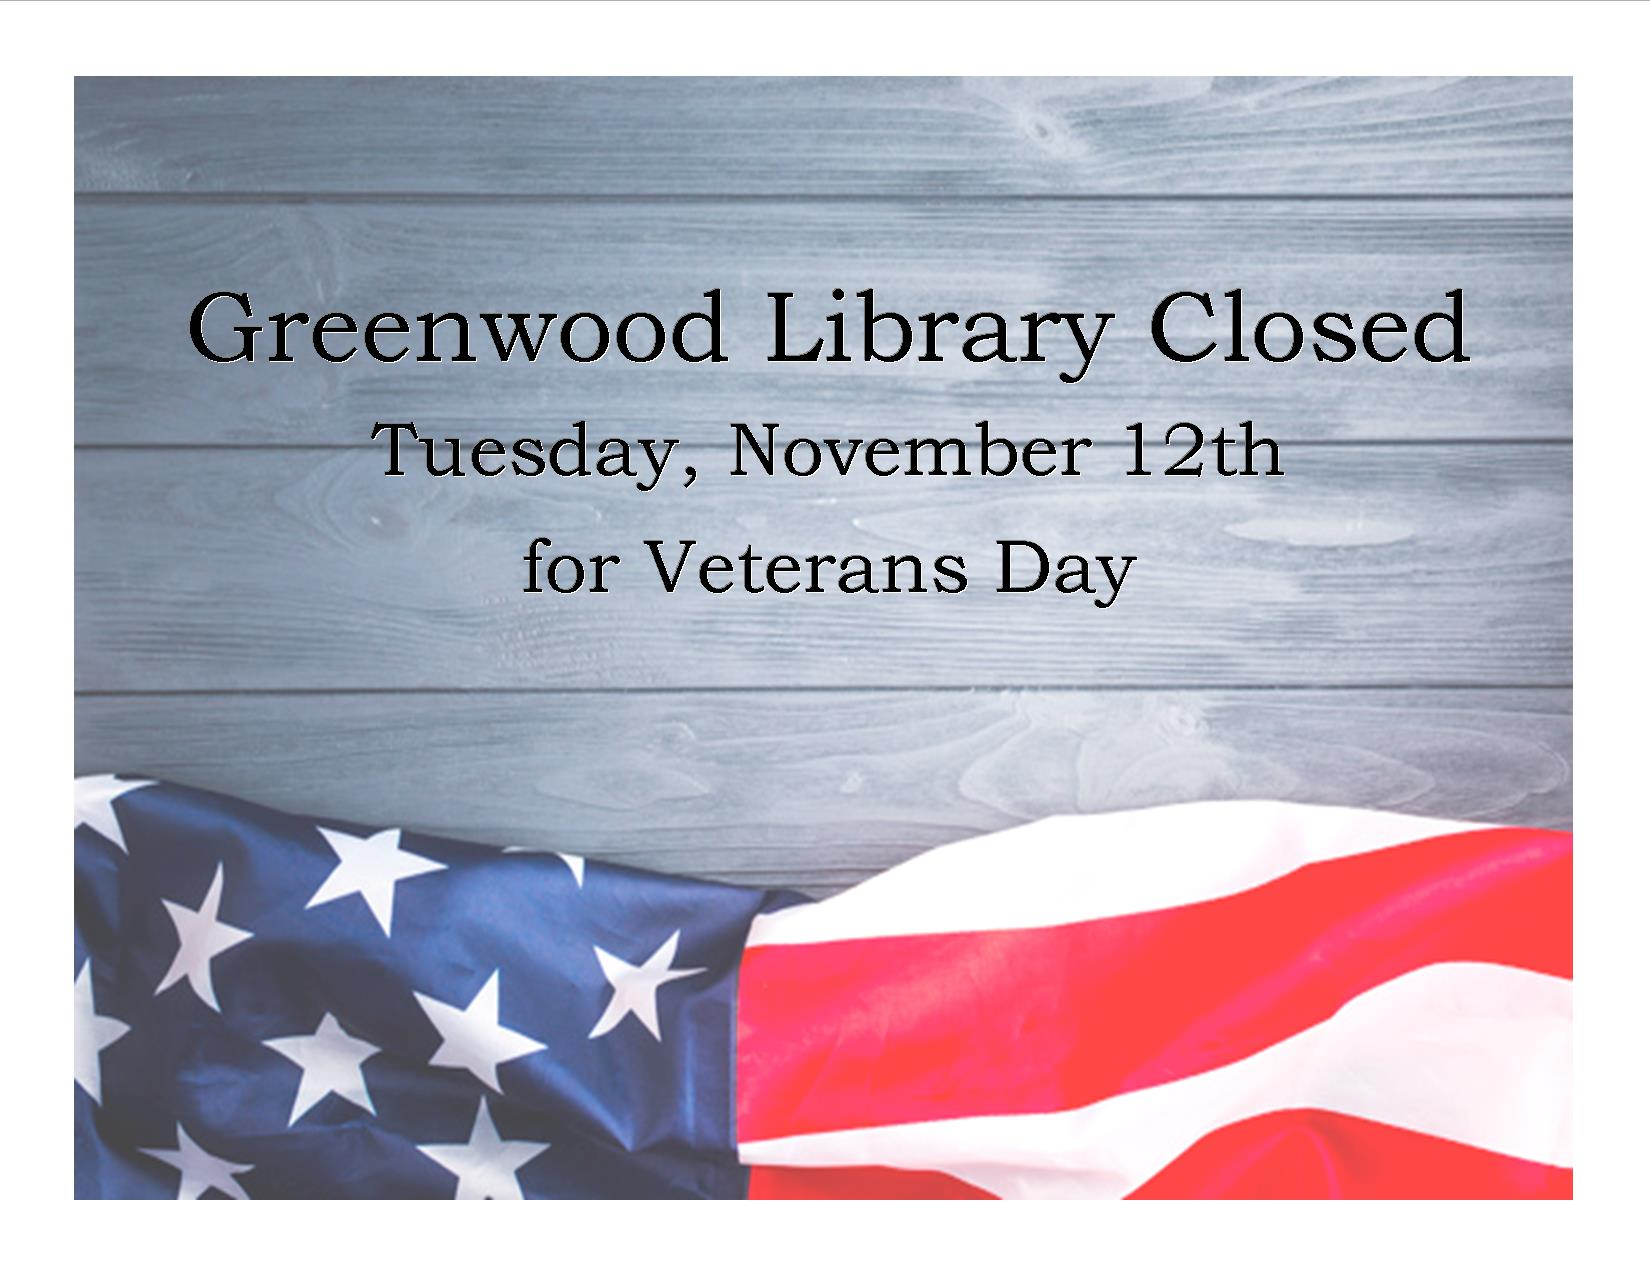 Greenwood Public Library Closed for Veterans Day